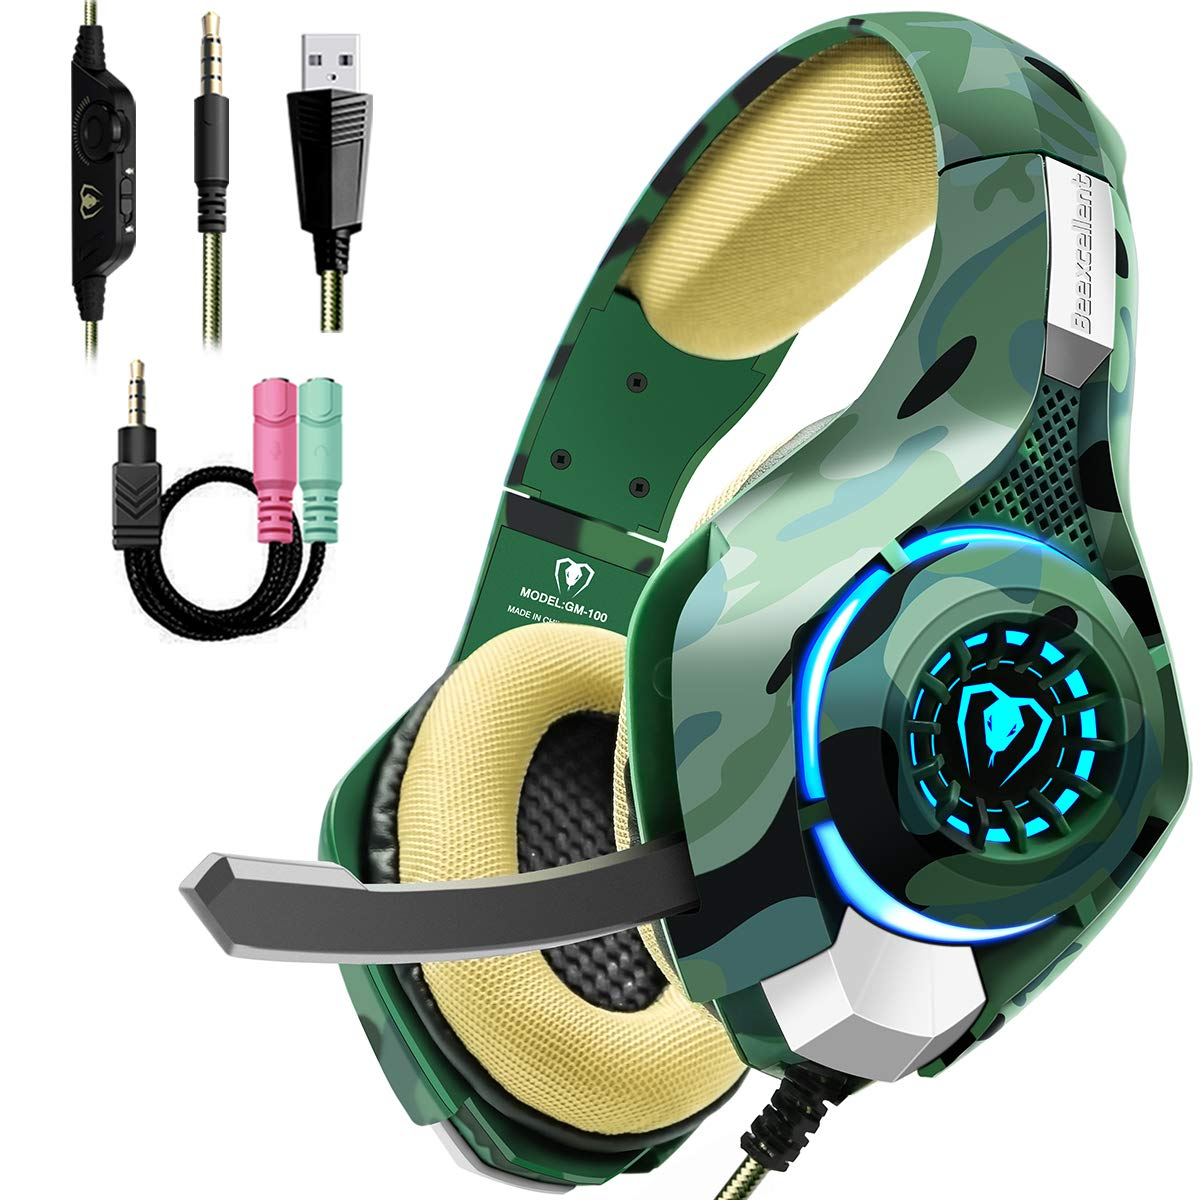 Beexcellent Gaming Headset for PS4 PC Xbox One, Stereo PS4 Gaming Headset with Noise Isolation Mic, Memory Foam Earcup, Thumb Wheel Volume Switch, Lightweight Xbox One Headset for Laptop Tablet-Camo by Beexcellent